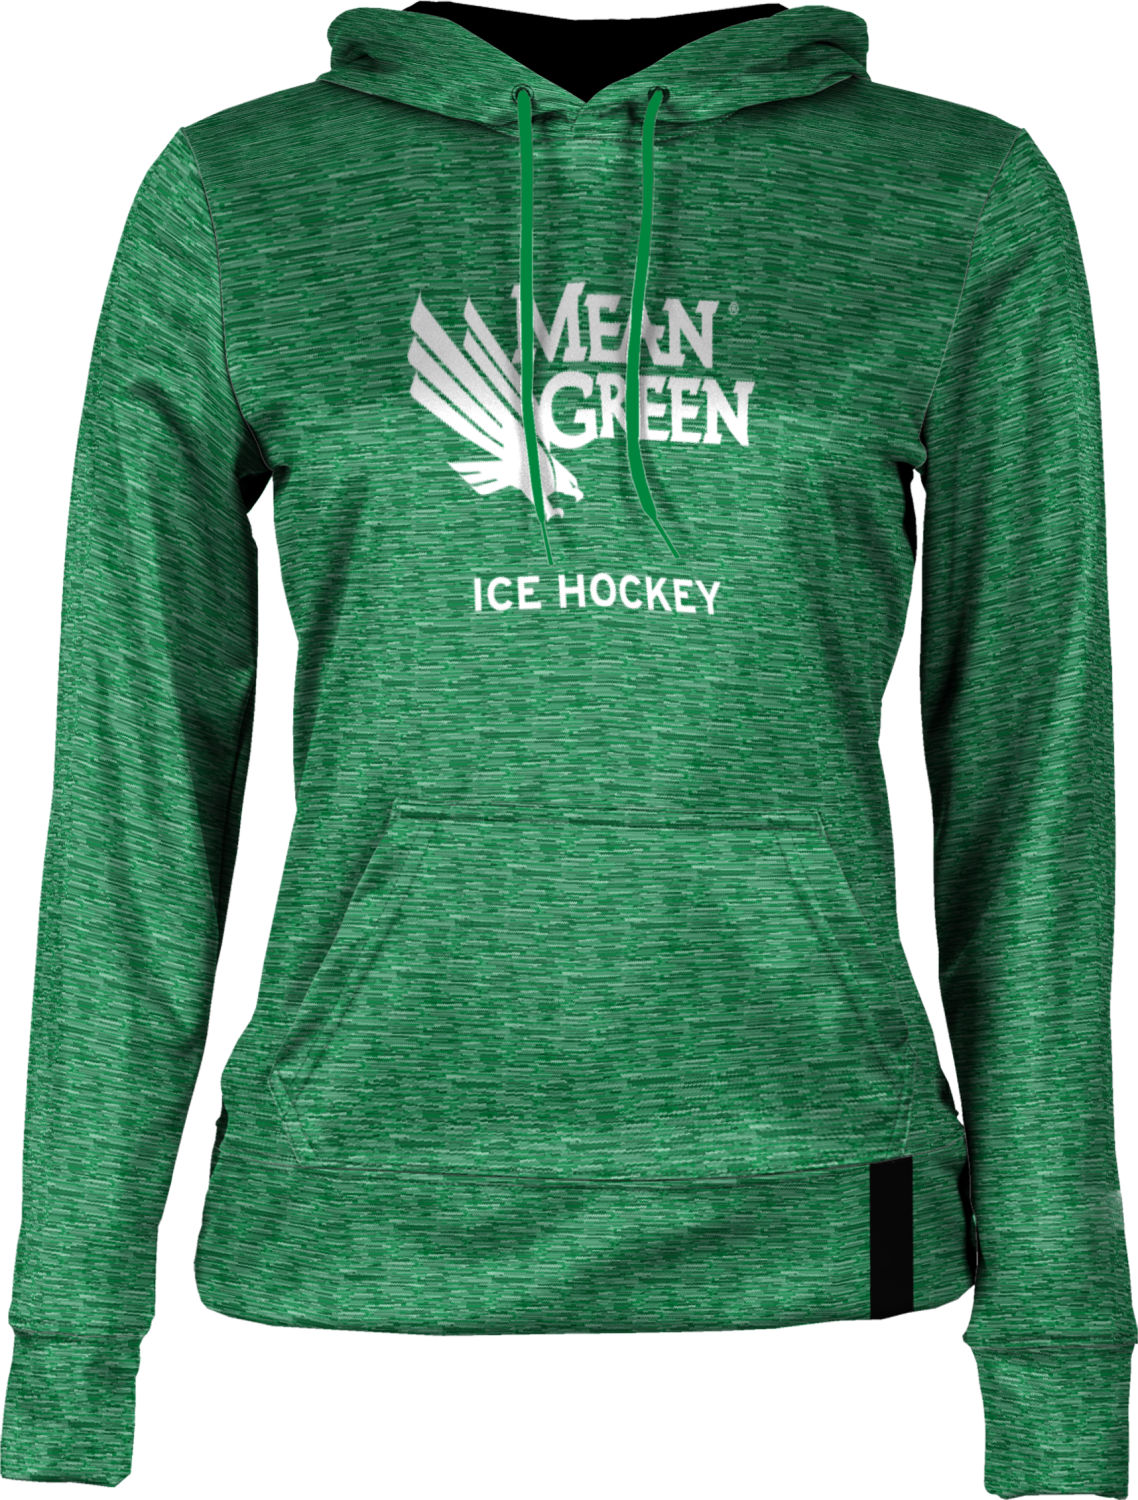 Girl's ProSphere Sublimated Hoodie - Ice Hockey